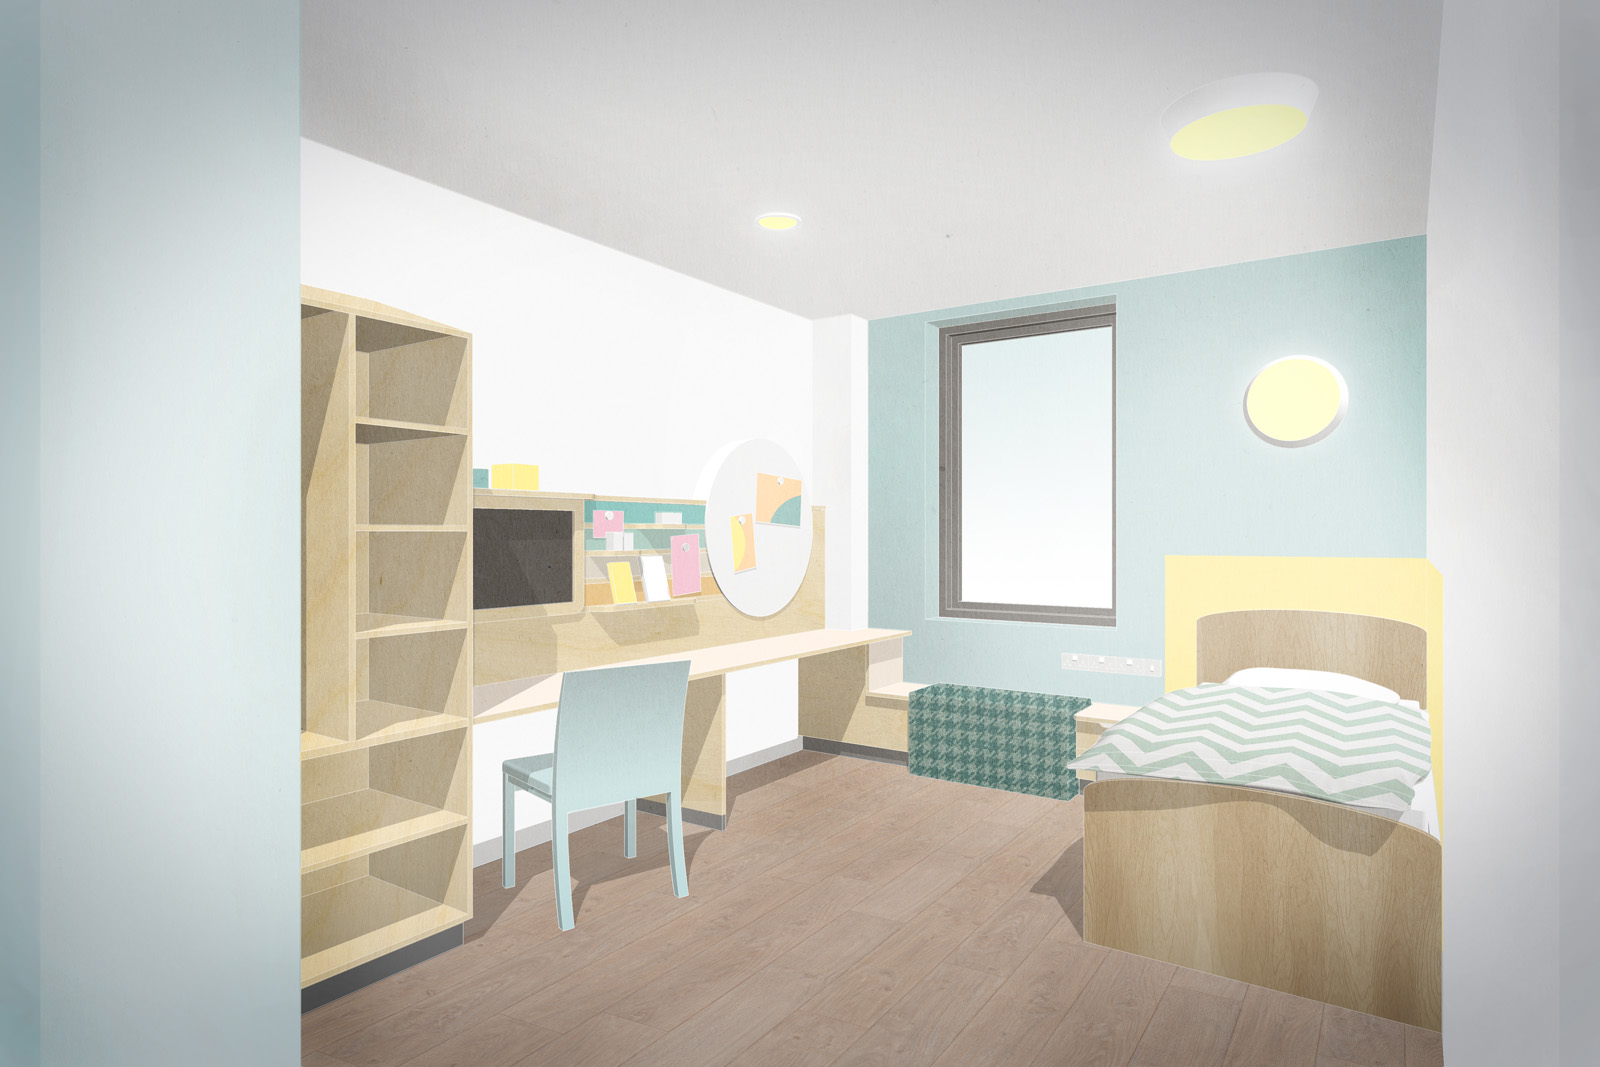 Inpatient bedroom